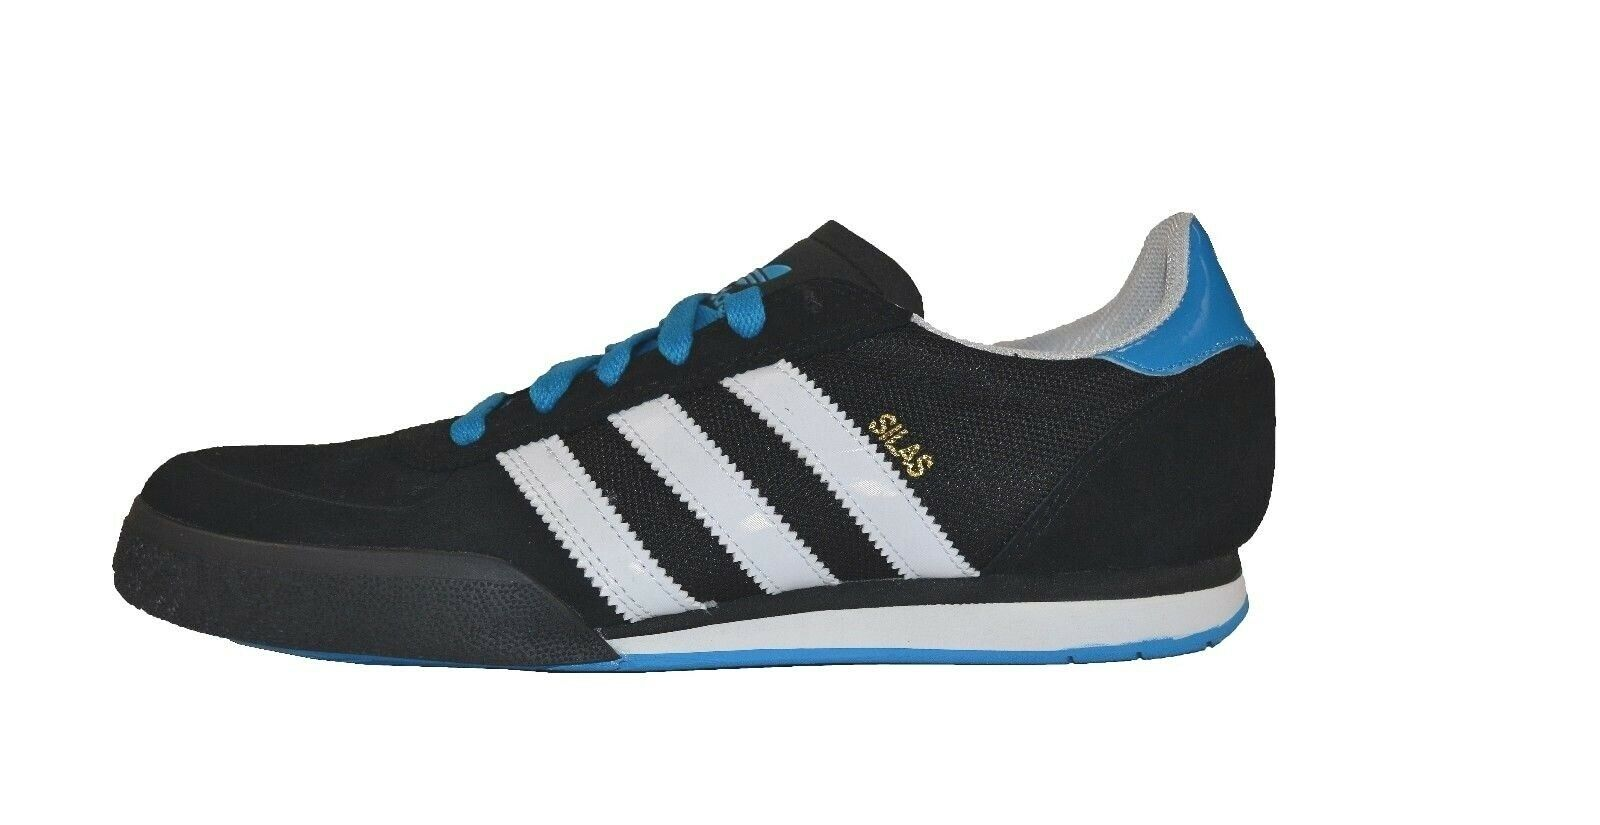 2aded12193 купить Adidas Skateboarding Campus Vulc, с доставкой Adidas SILAS SLR Black  White Blue Skateboarding Discounted